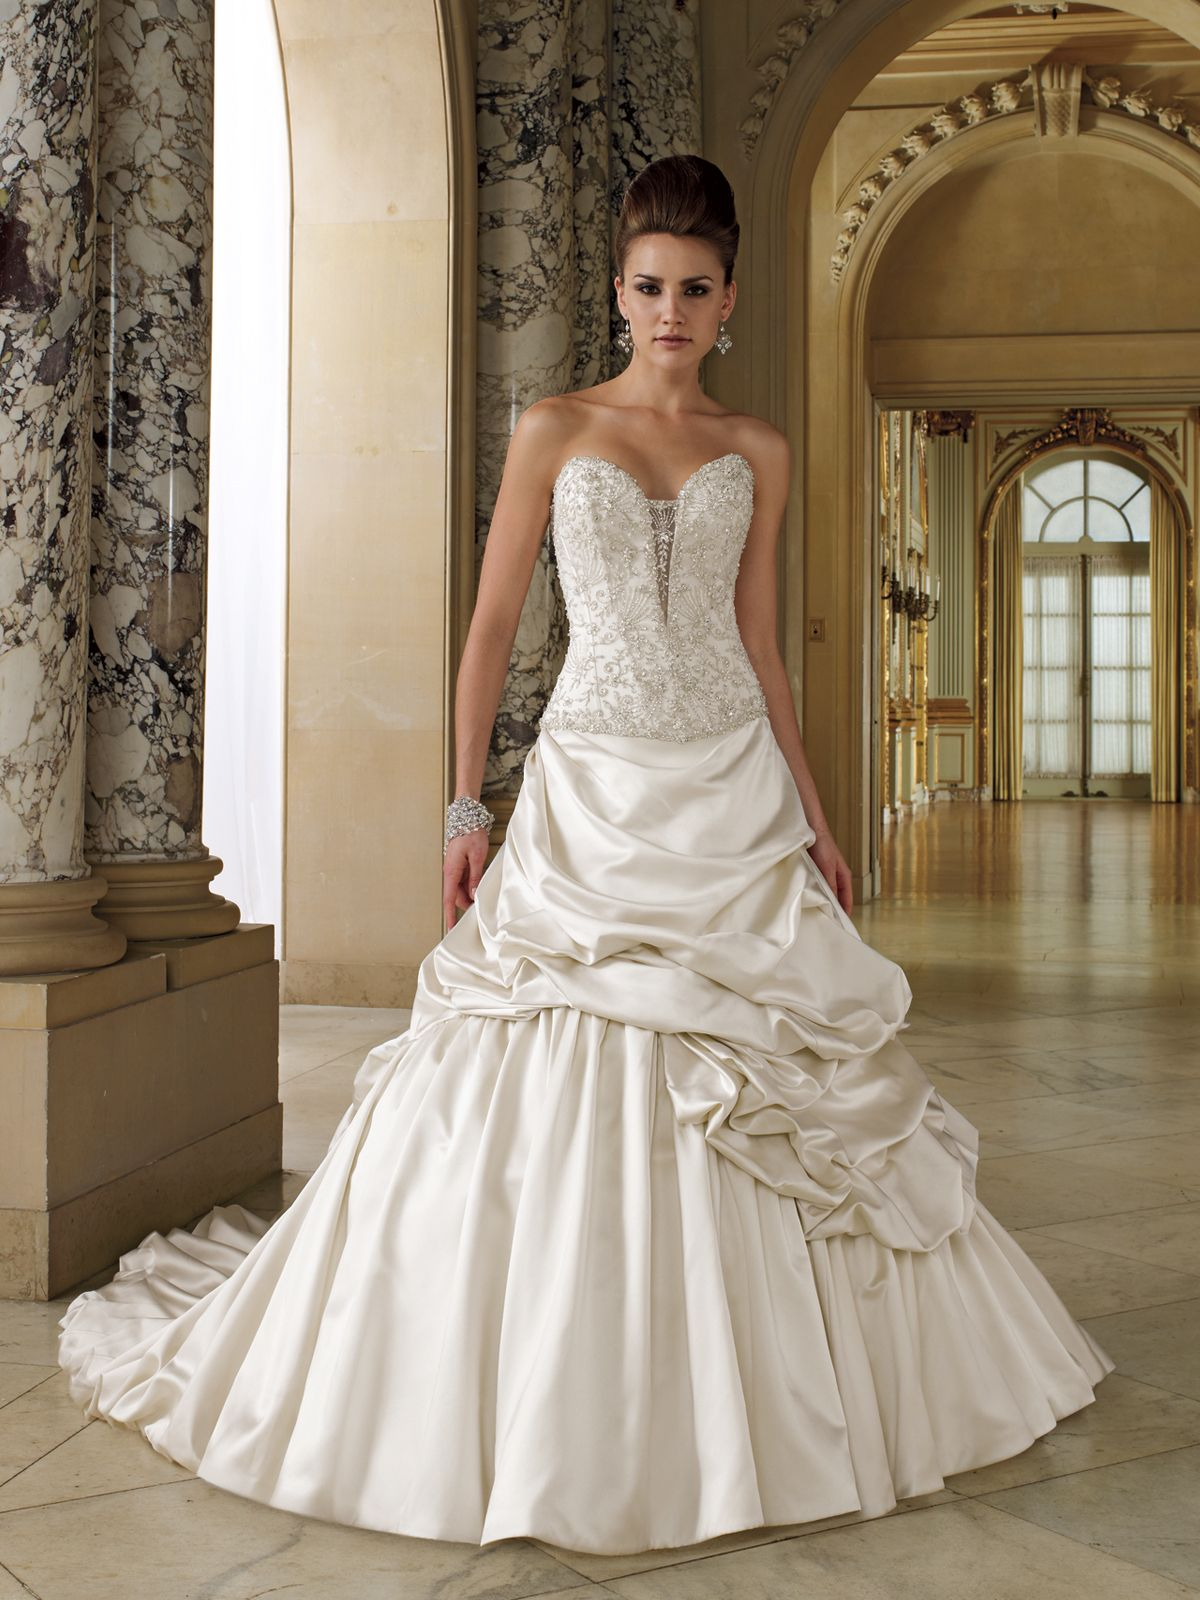 Wedding dresses and bridals gowns by David Tutera for Mon Cheri for every bride at an affordable price | Wedding Dresses|style #112202 - Falsette